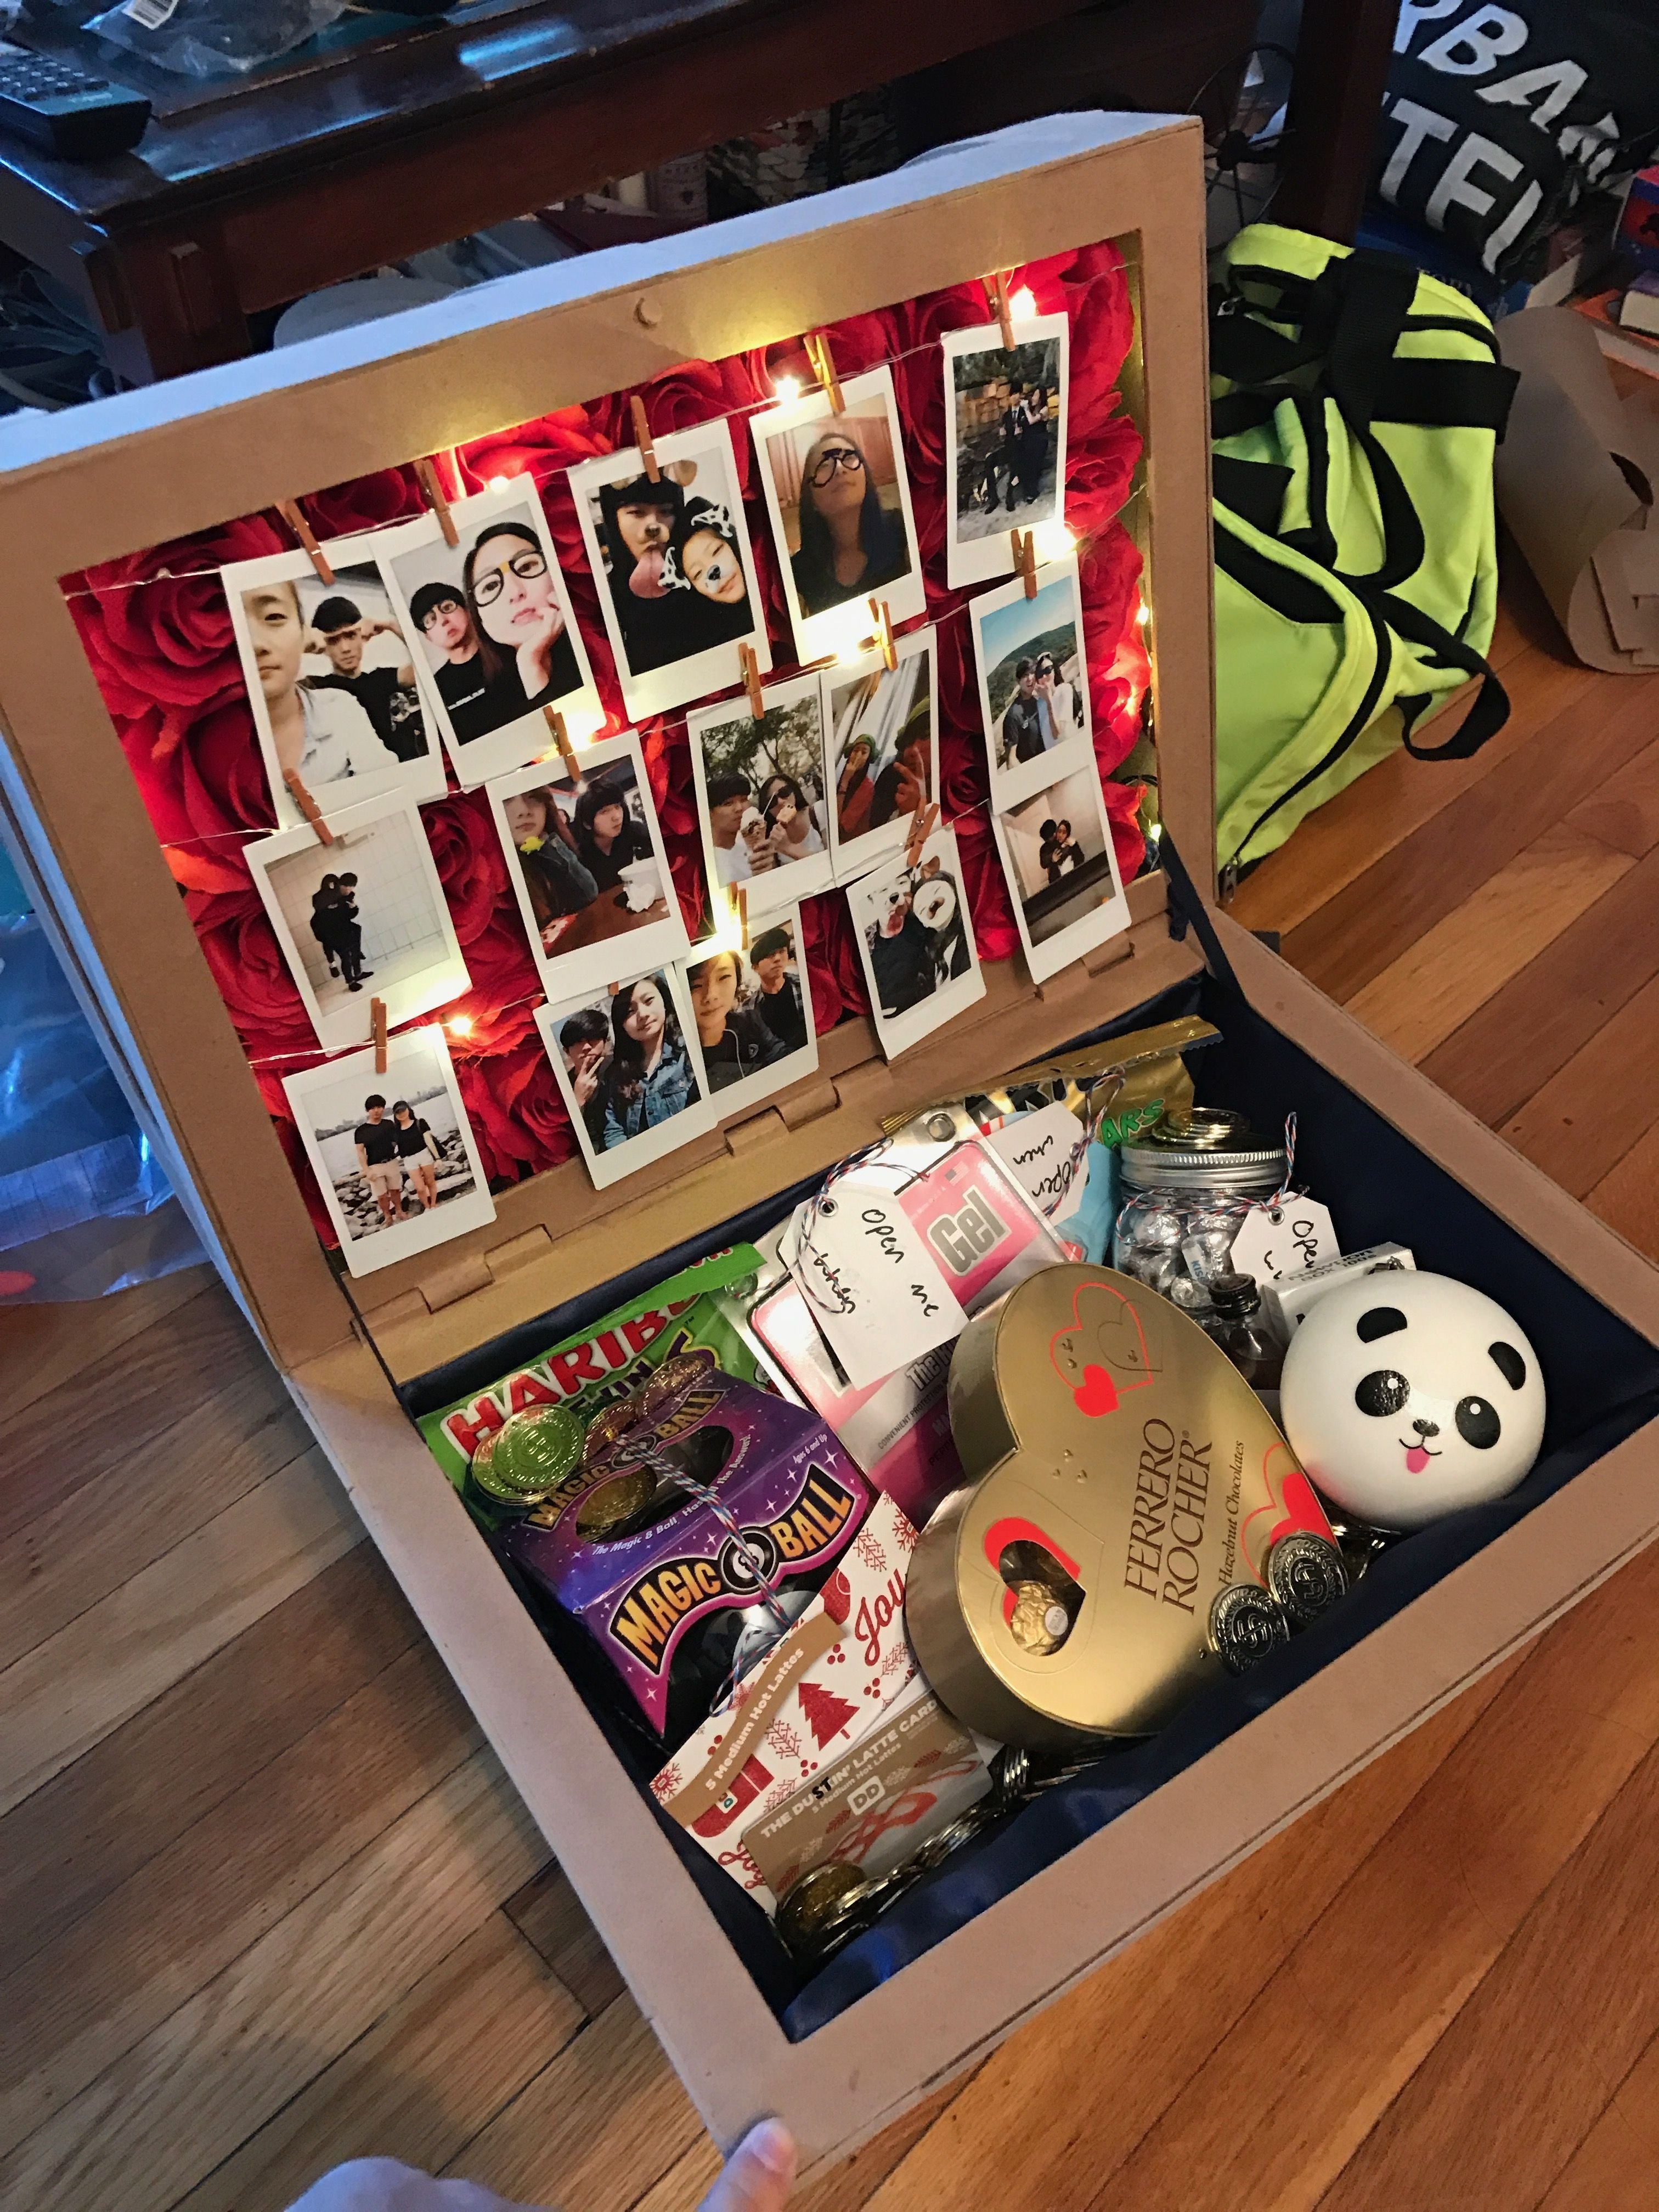 10 Perfect Creative Birthday Ideas For Girlfriend i made a treasure chest out of paper for my girlfriend 3 2020